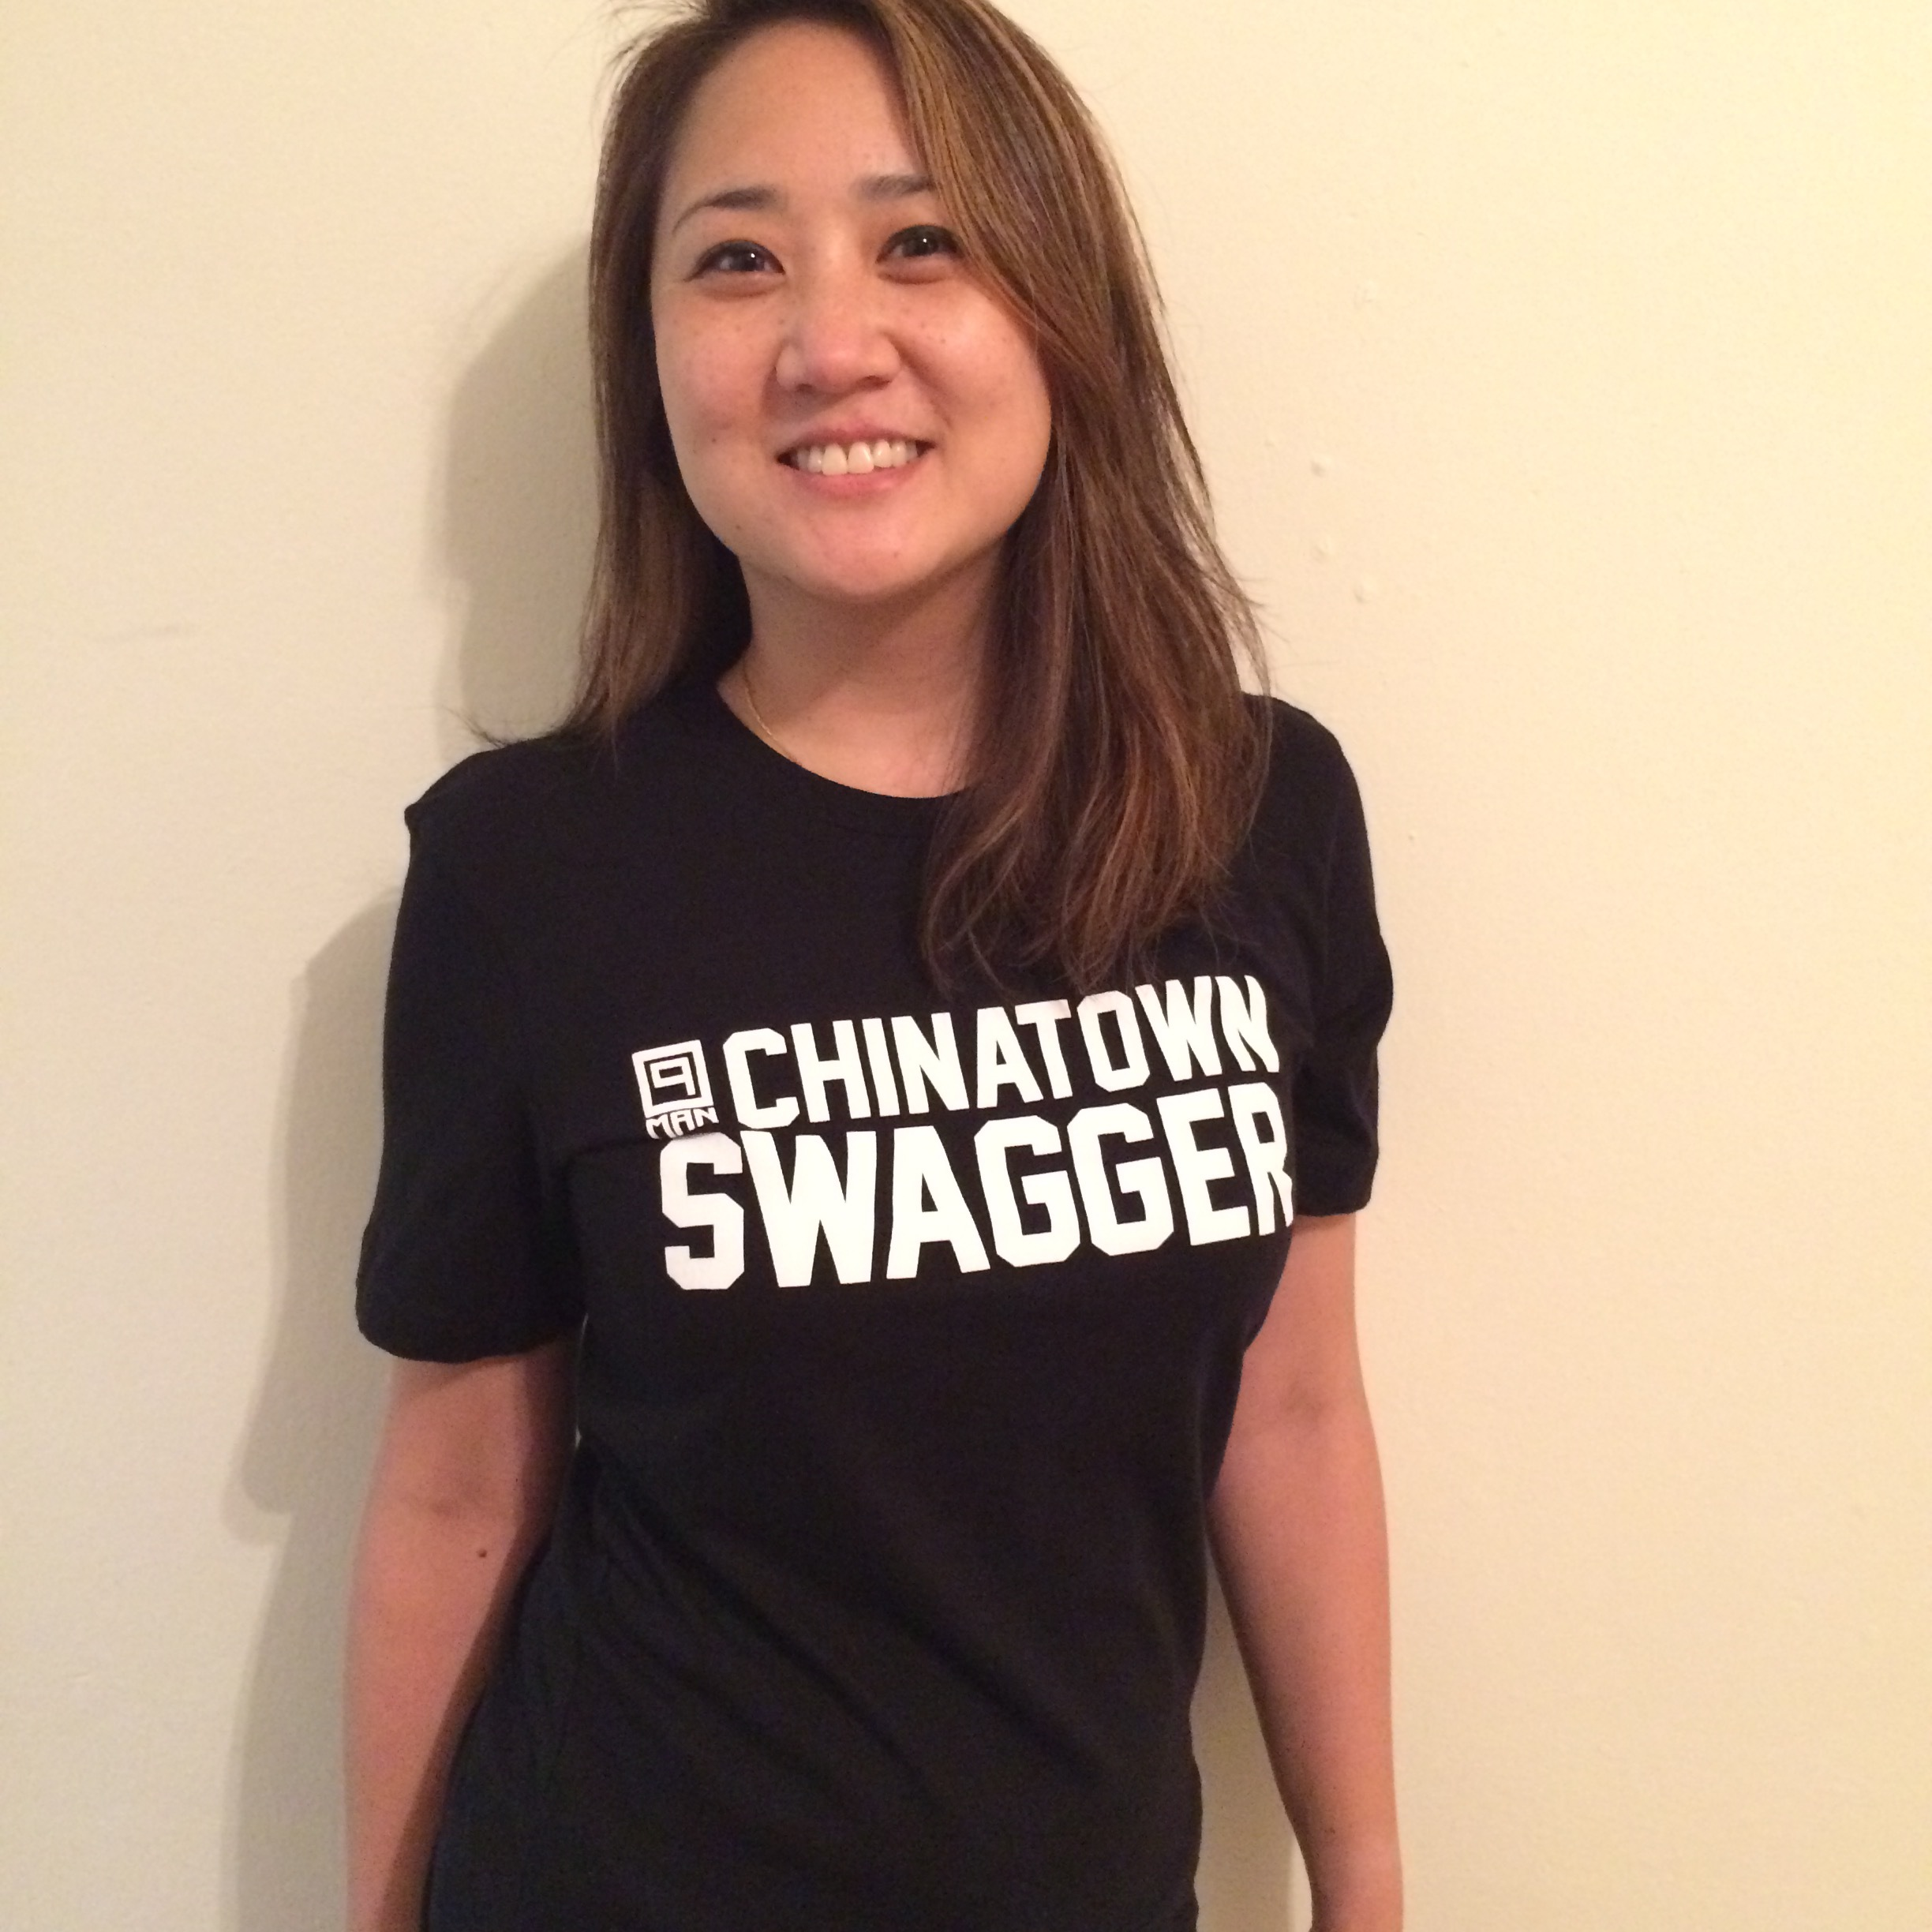 BUY A 9-MAN CHINATOWN SWAGGER TEE—IN YOUTH SIZES TOO!